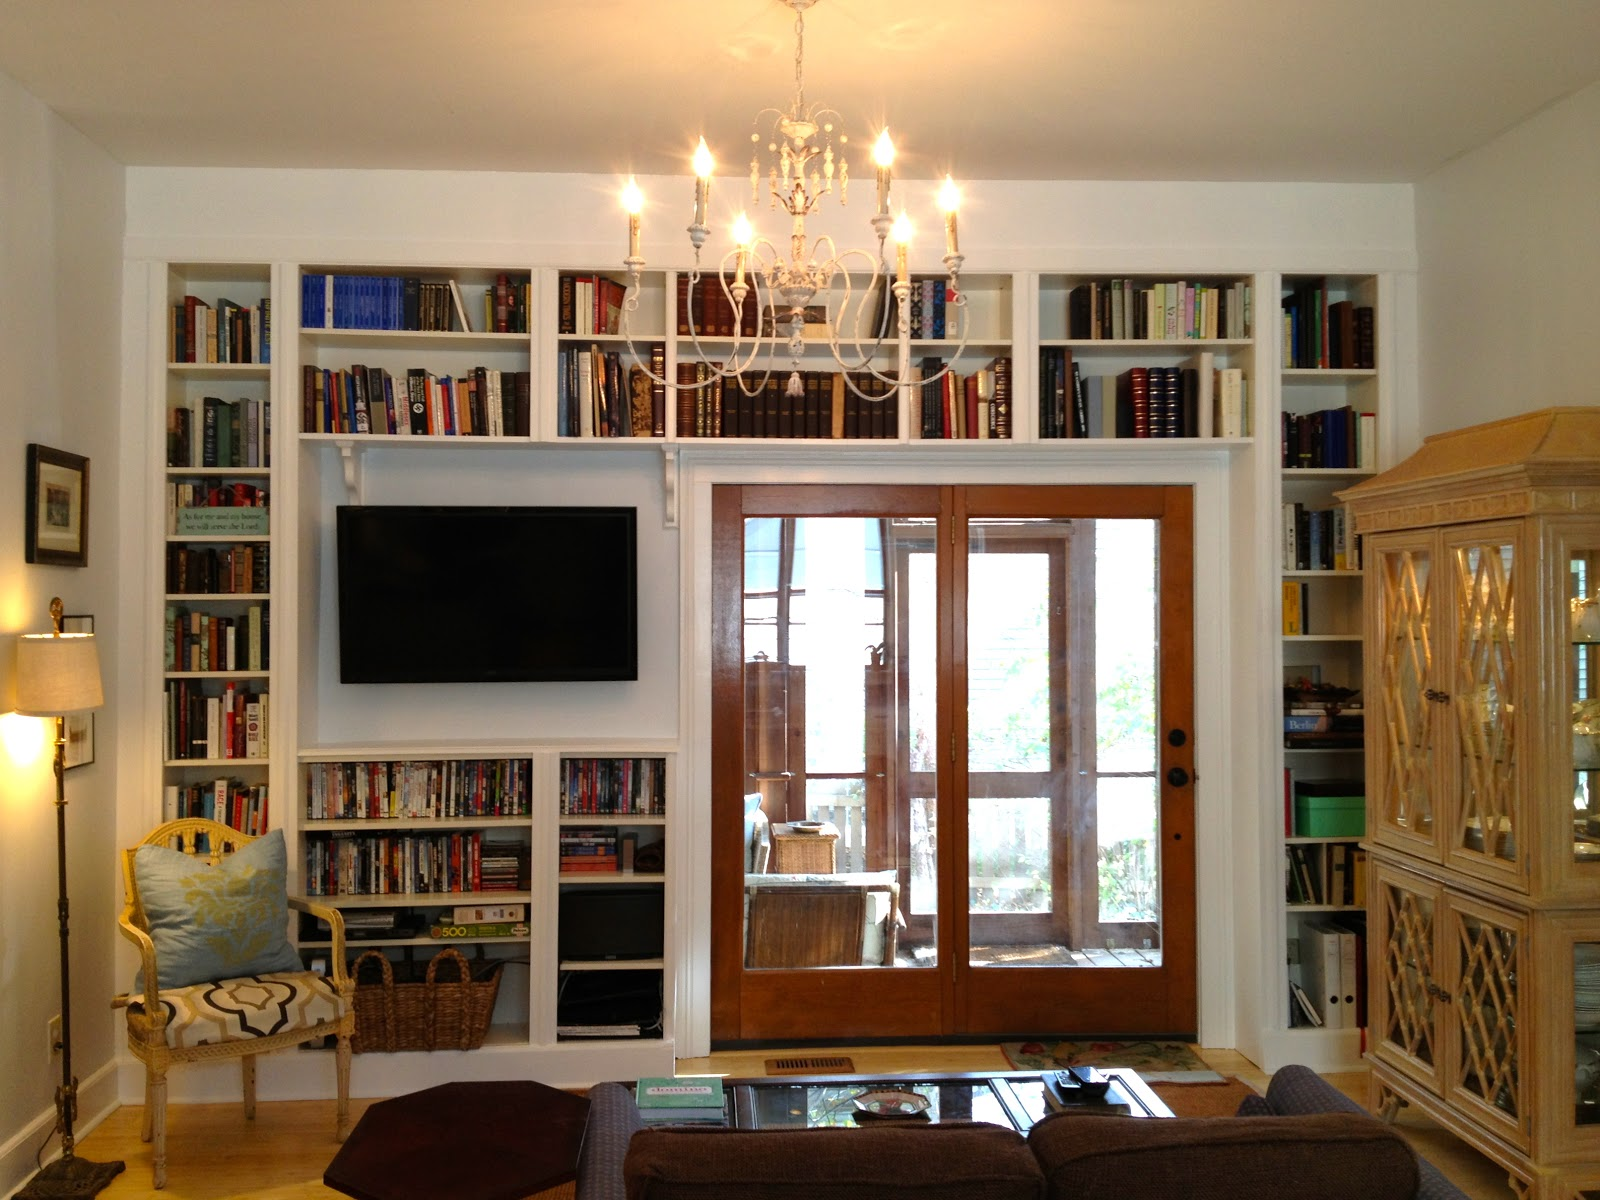 IKEA Hack Built in Bookshelves 1600 x 1200